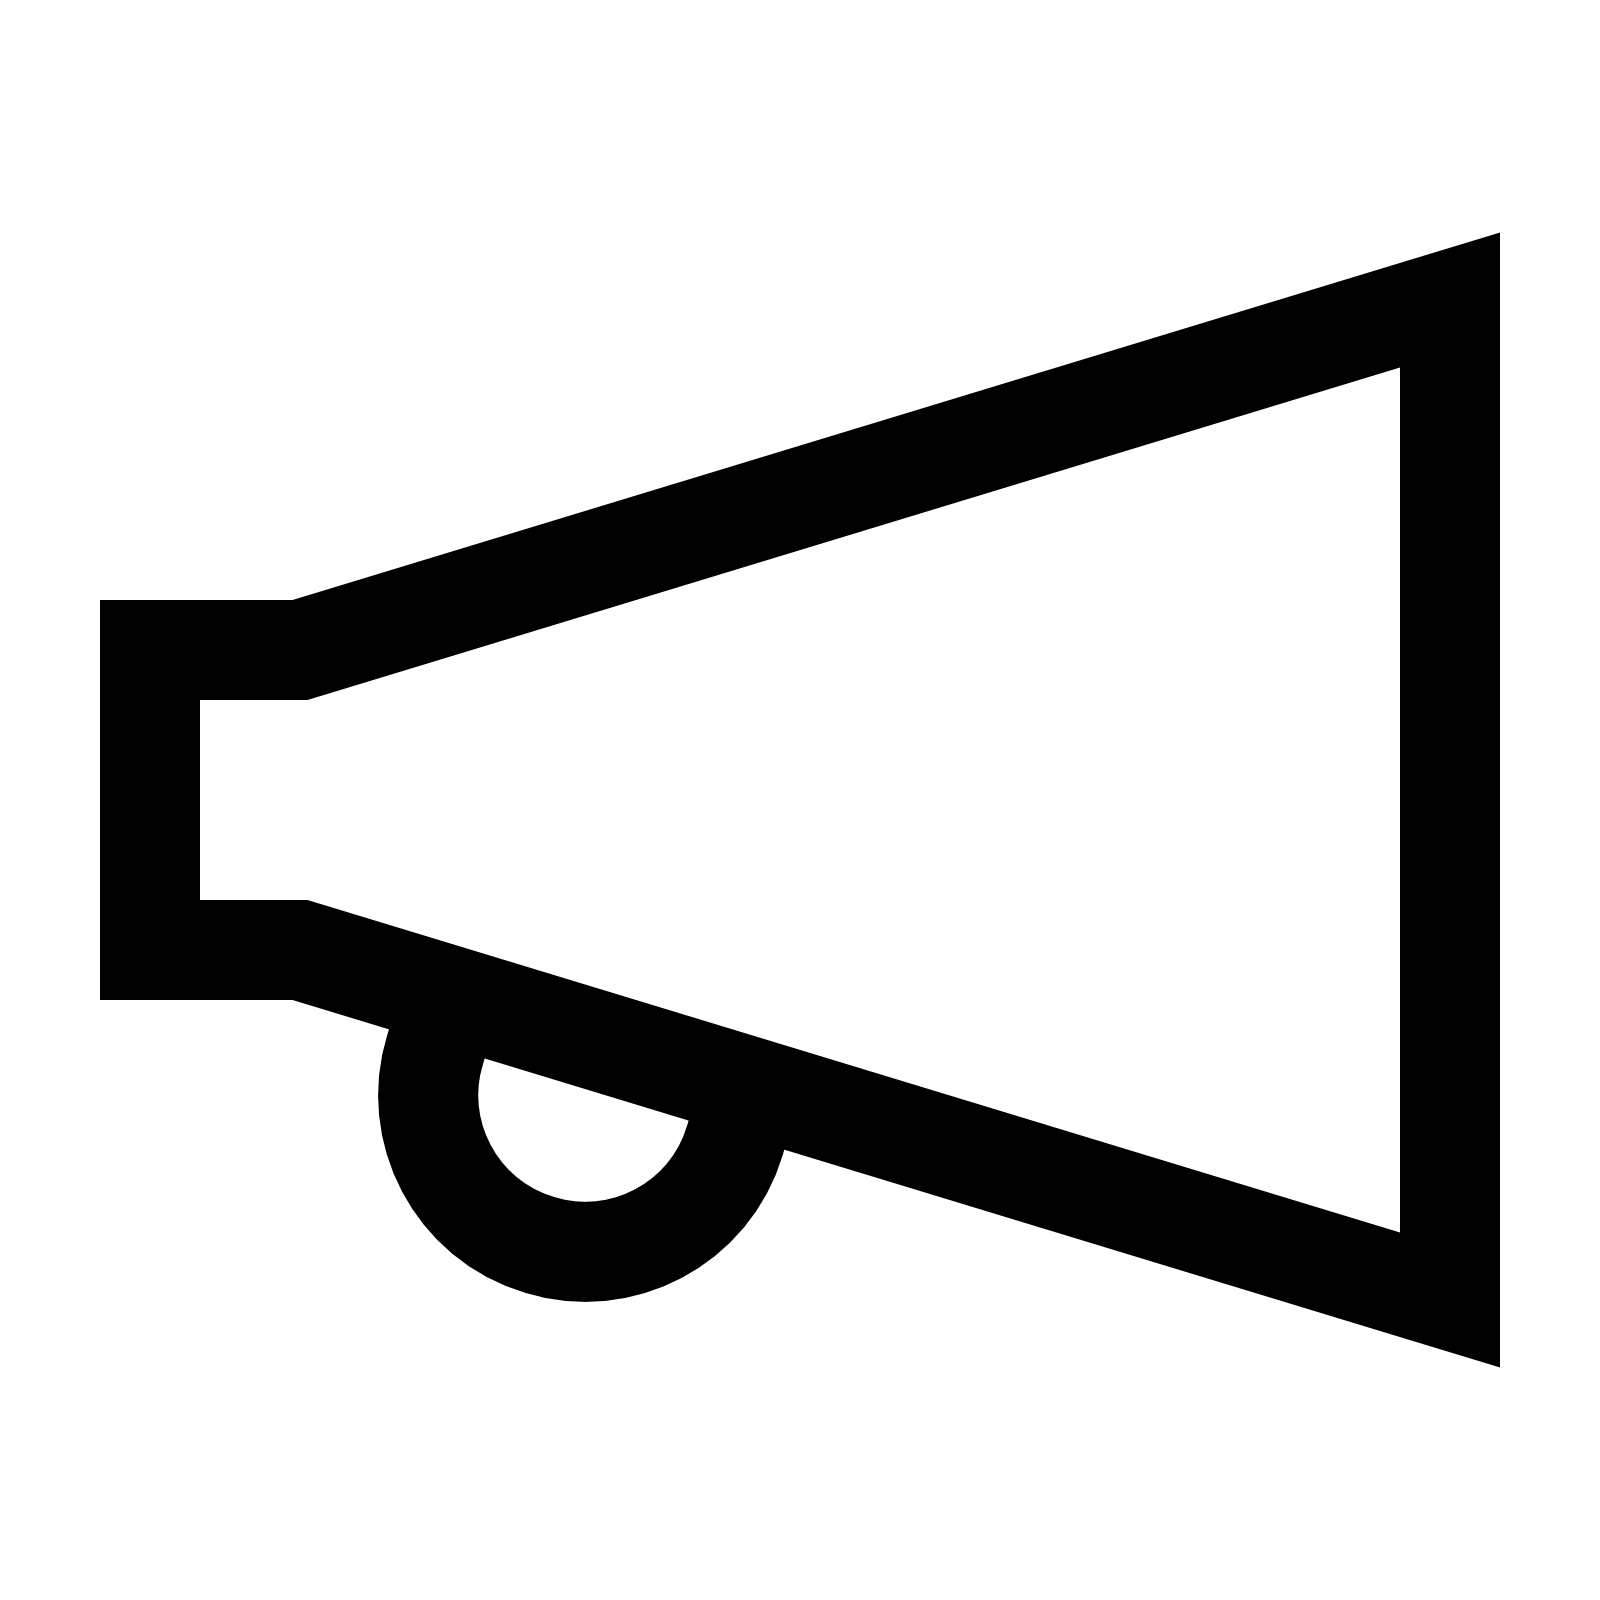 Vector megaphone simple. Free icon png download